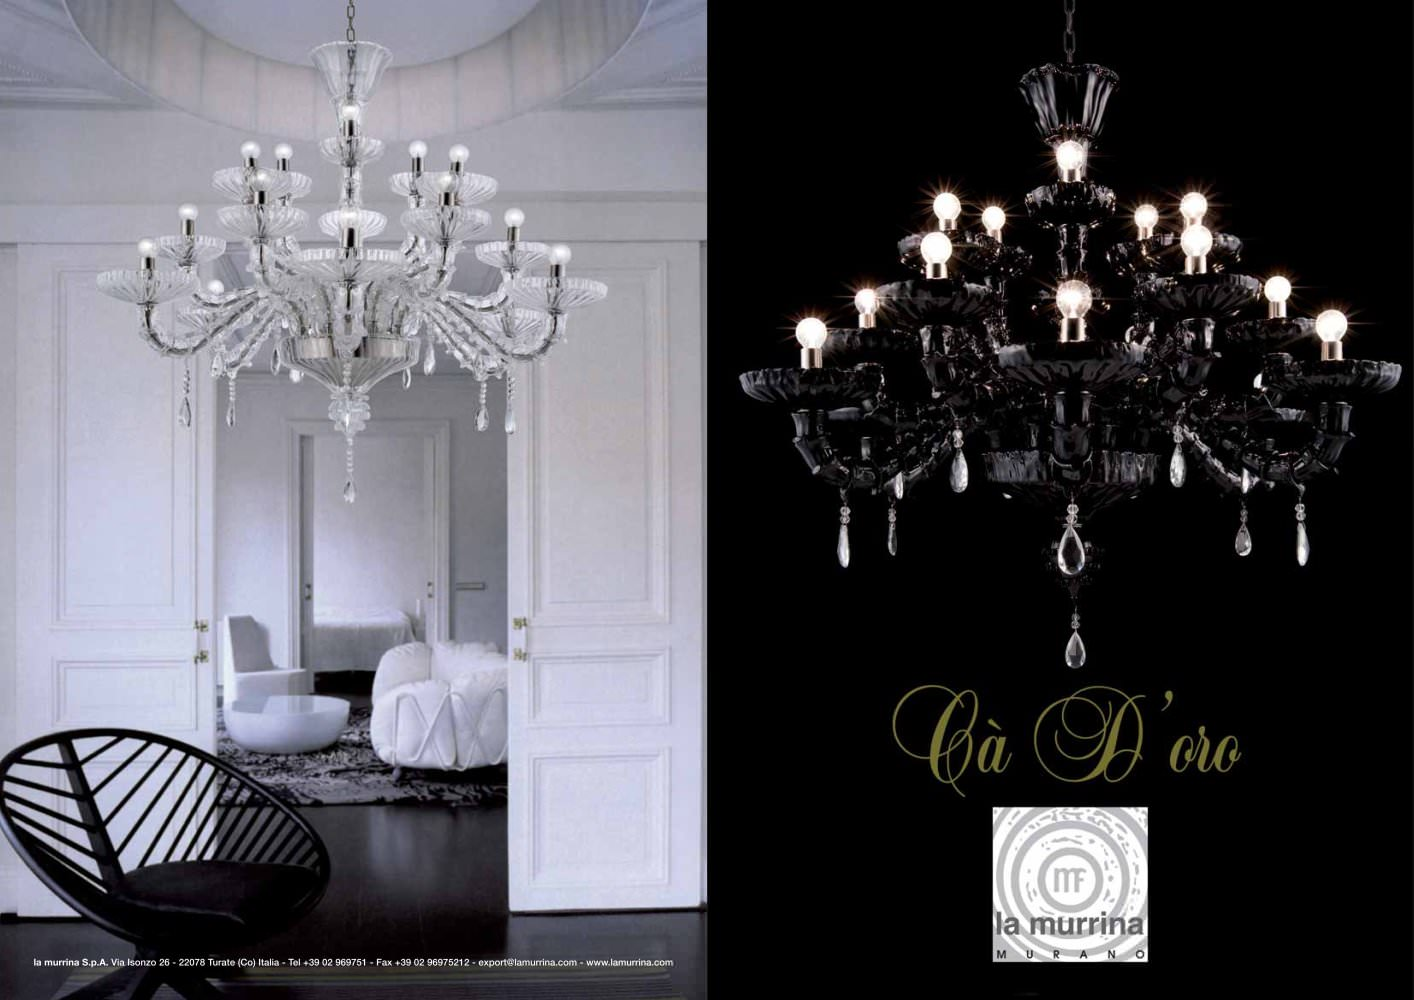 ca\' d\'oro - la murrina - PDF Catalogues | Documentation | Brochures